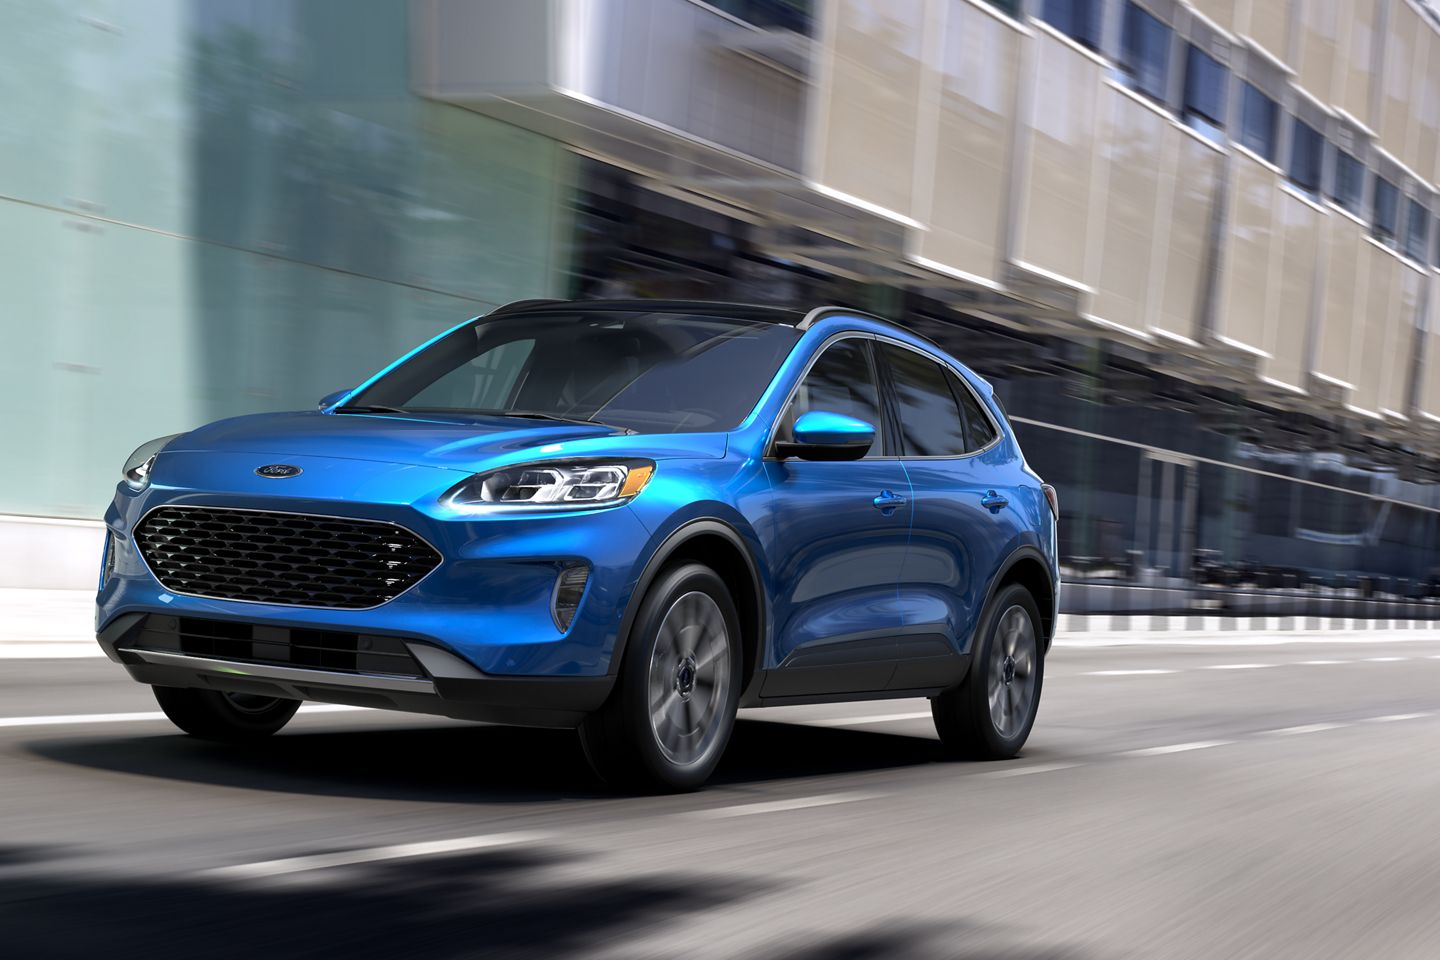 2020 Ford Escape Blue Exterior Front View Picture